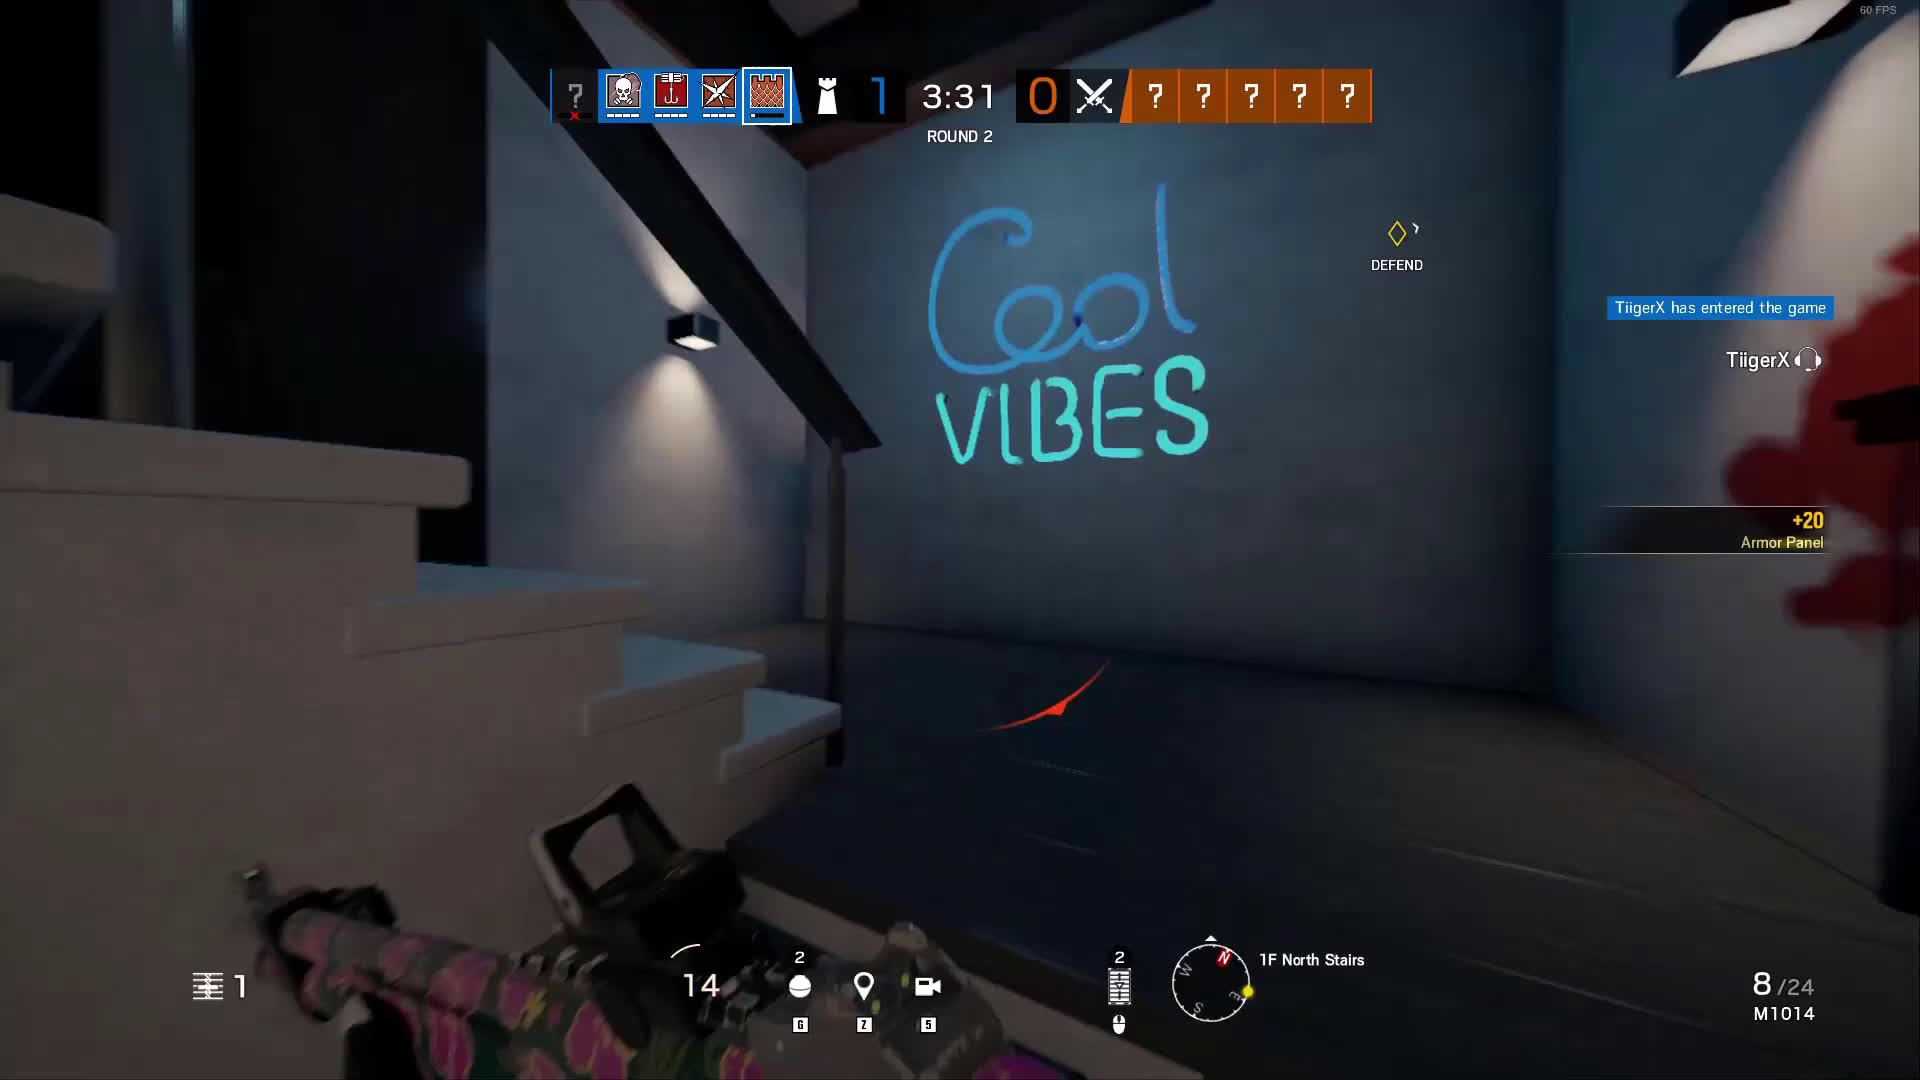 How to Counter Montagne Rainbow6 GIFs